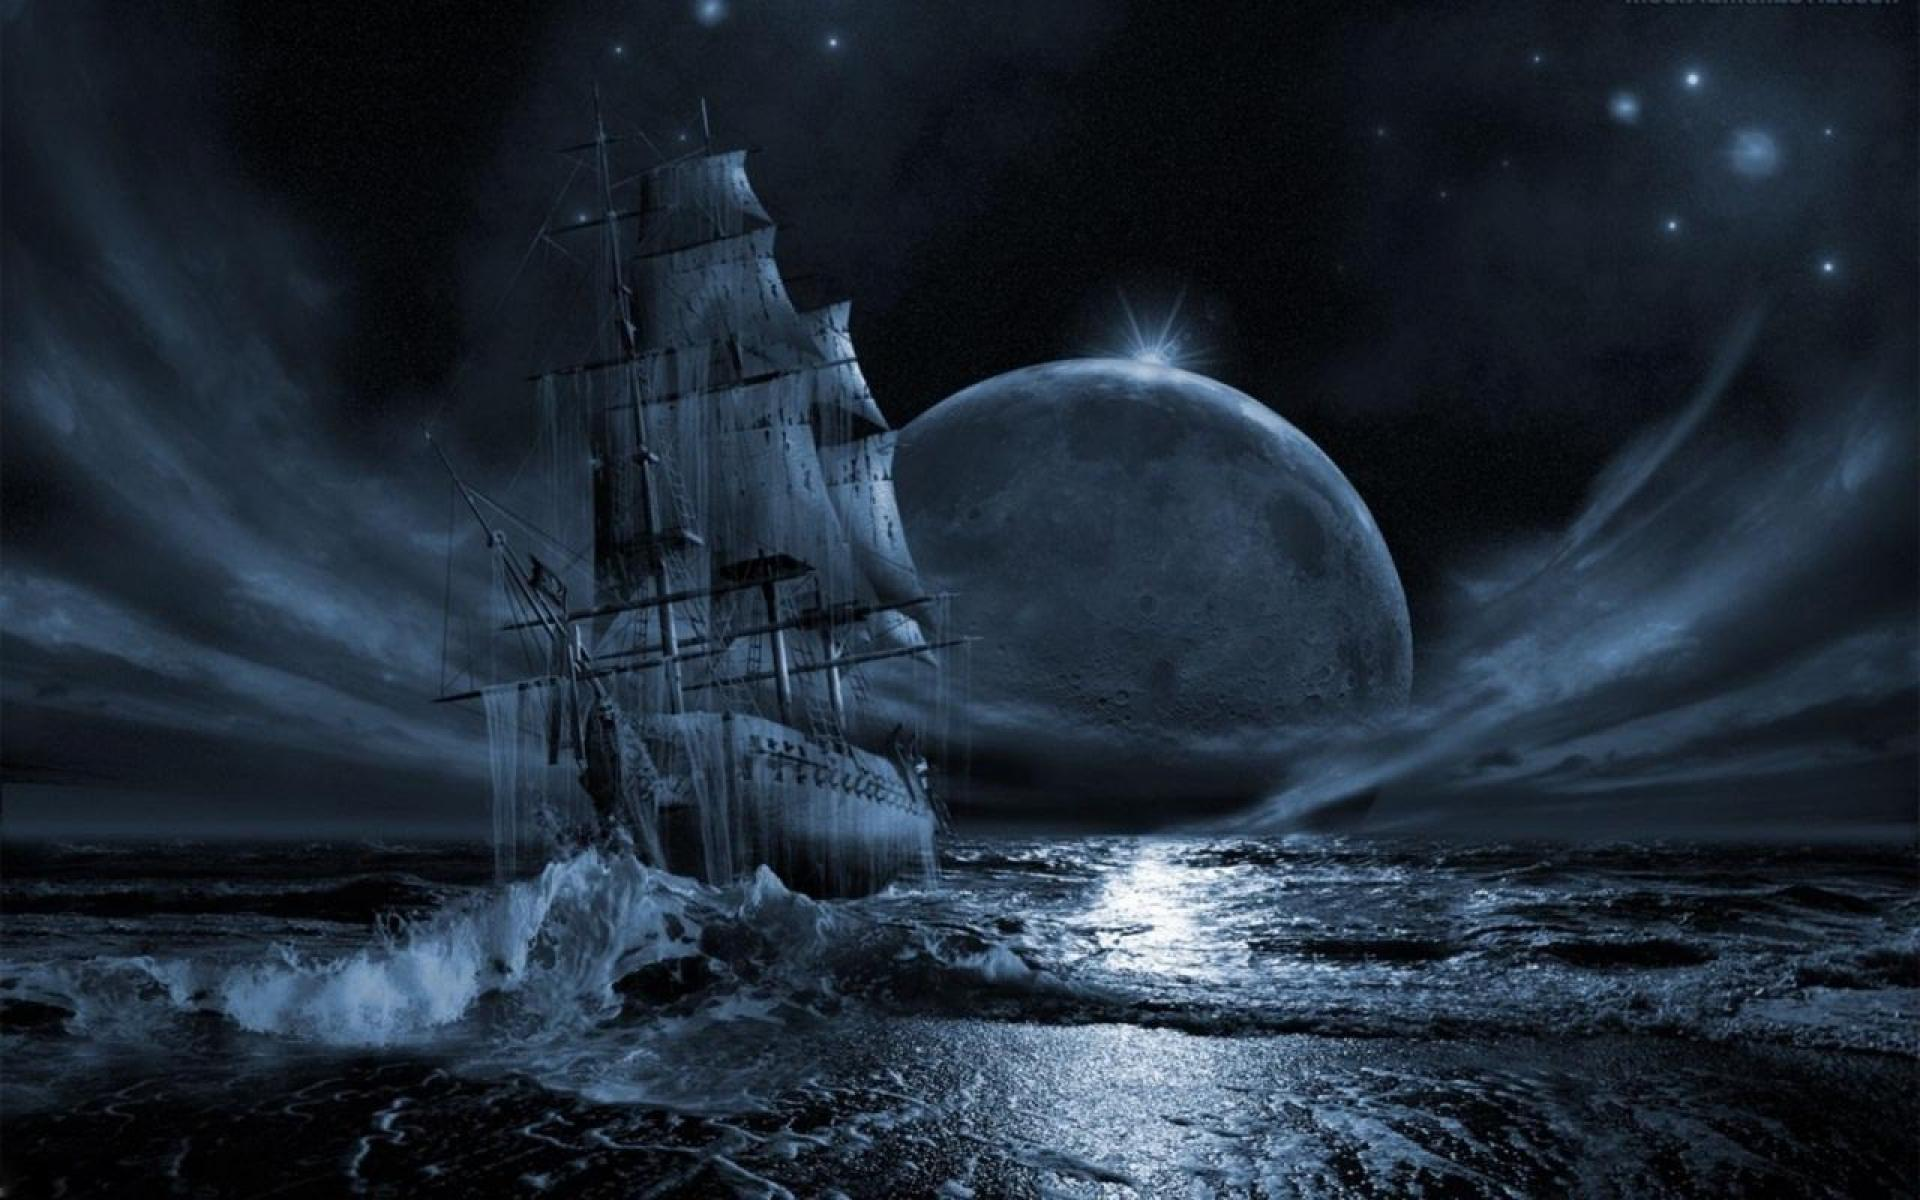 Ghost Ship Hd Wallpaper Wallpapers Abstract Hq